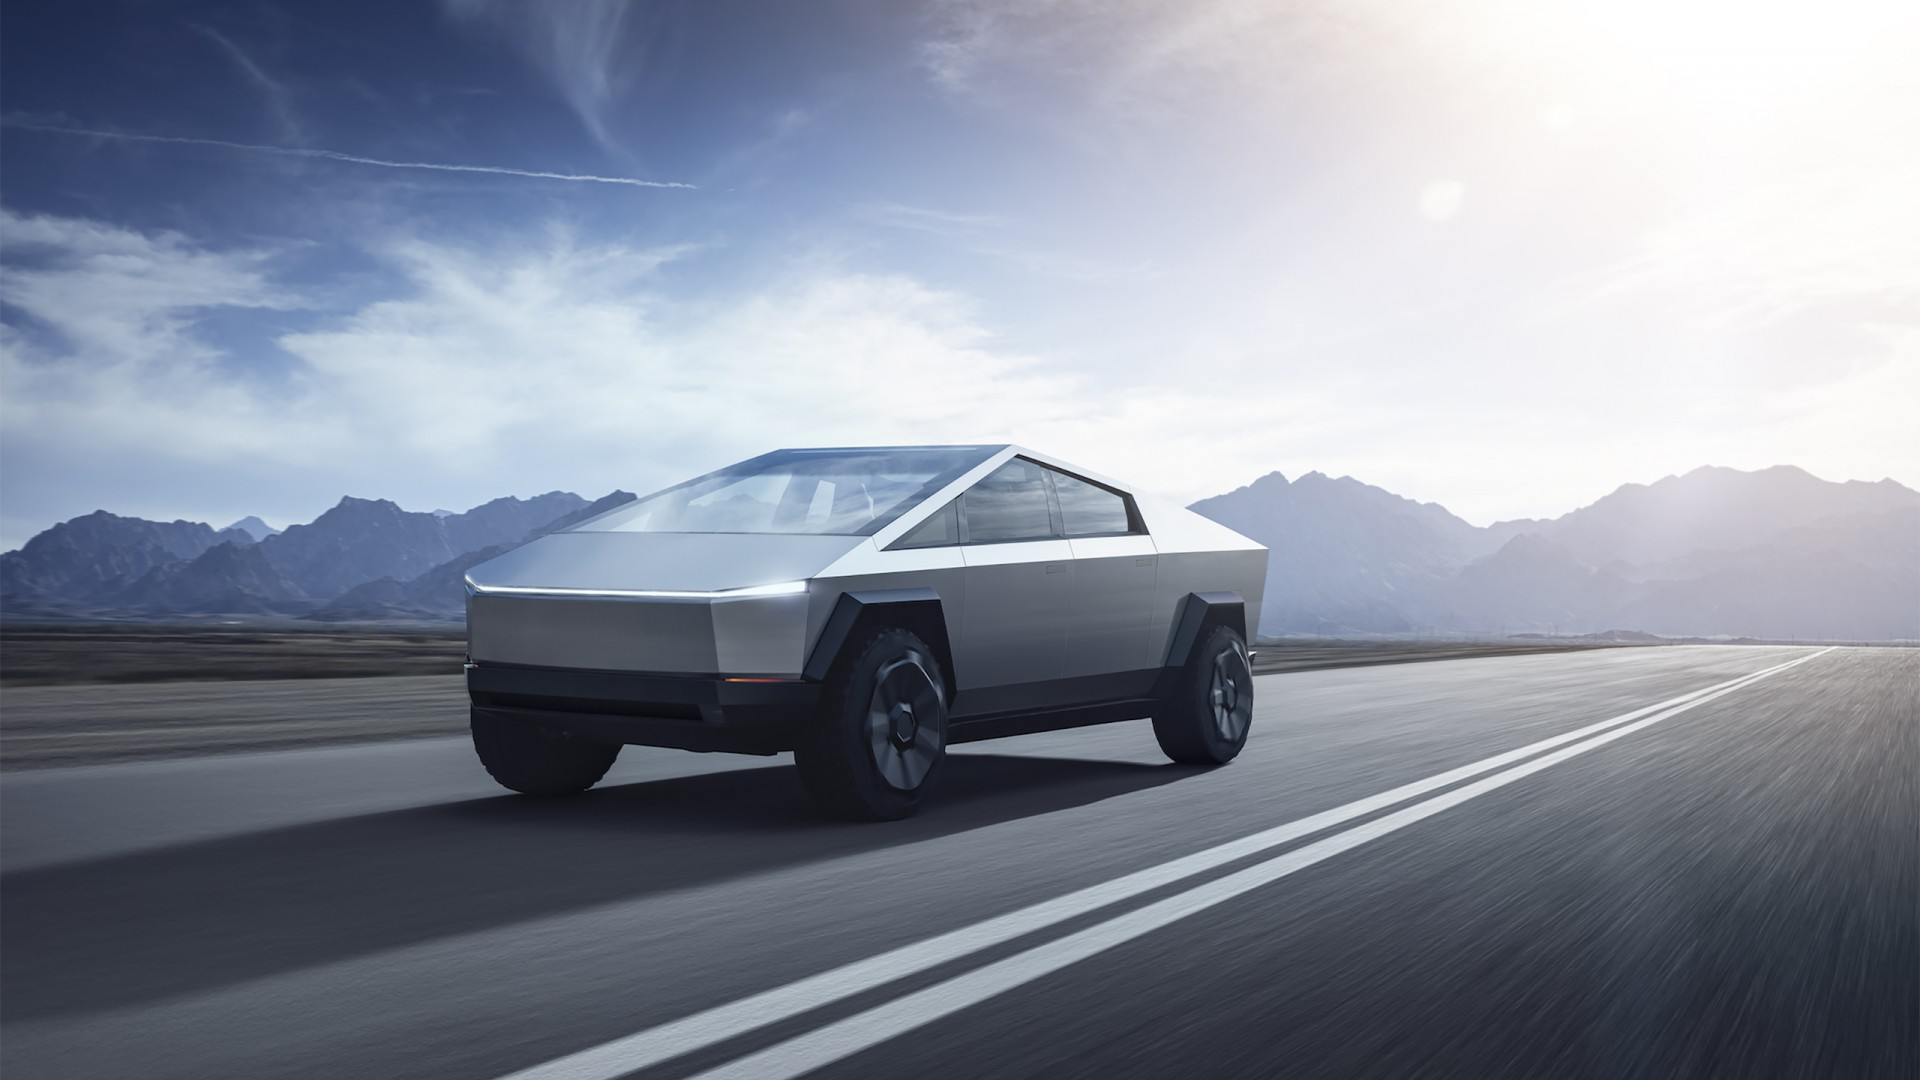 Tesla Cybertruck Prototype 2019 3 Wallpaper | HD Car ...